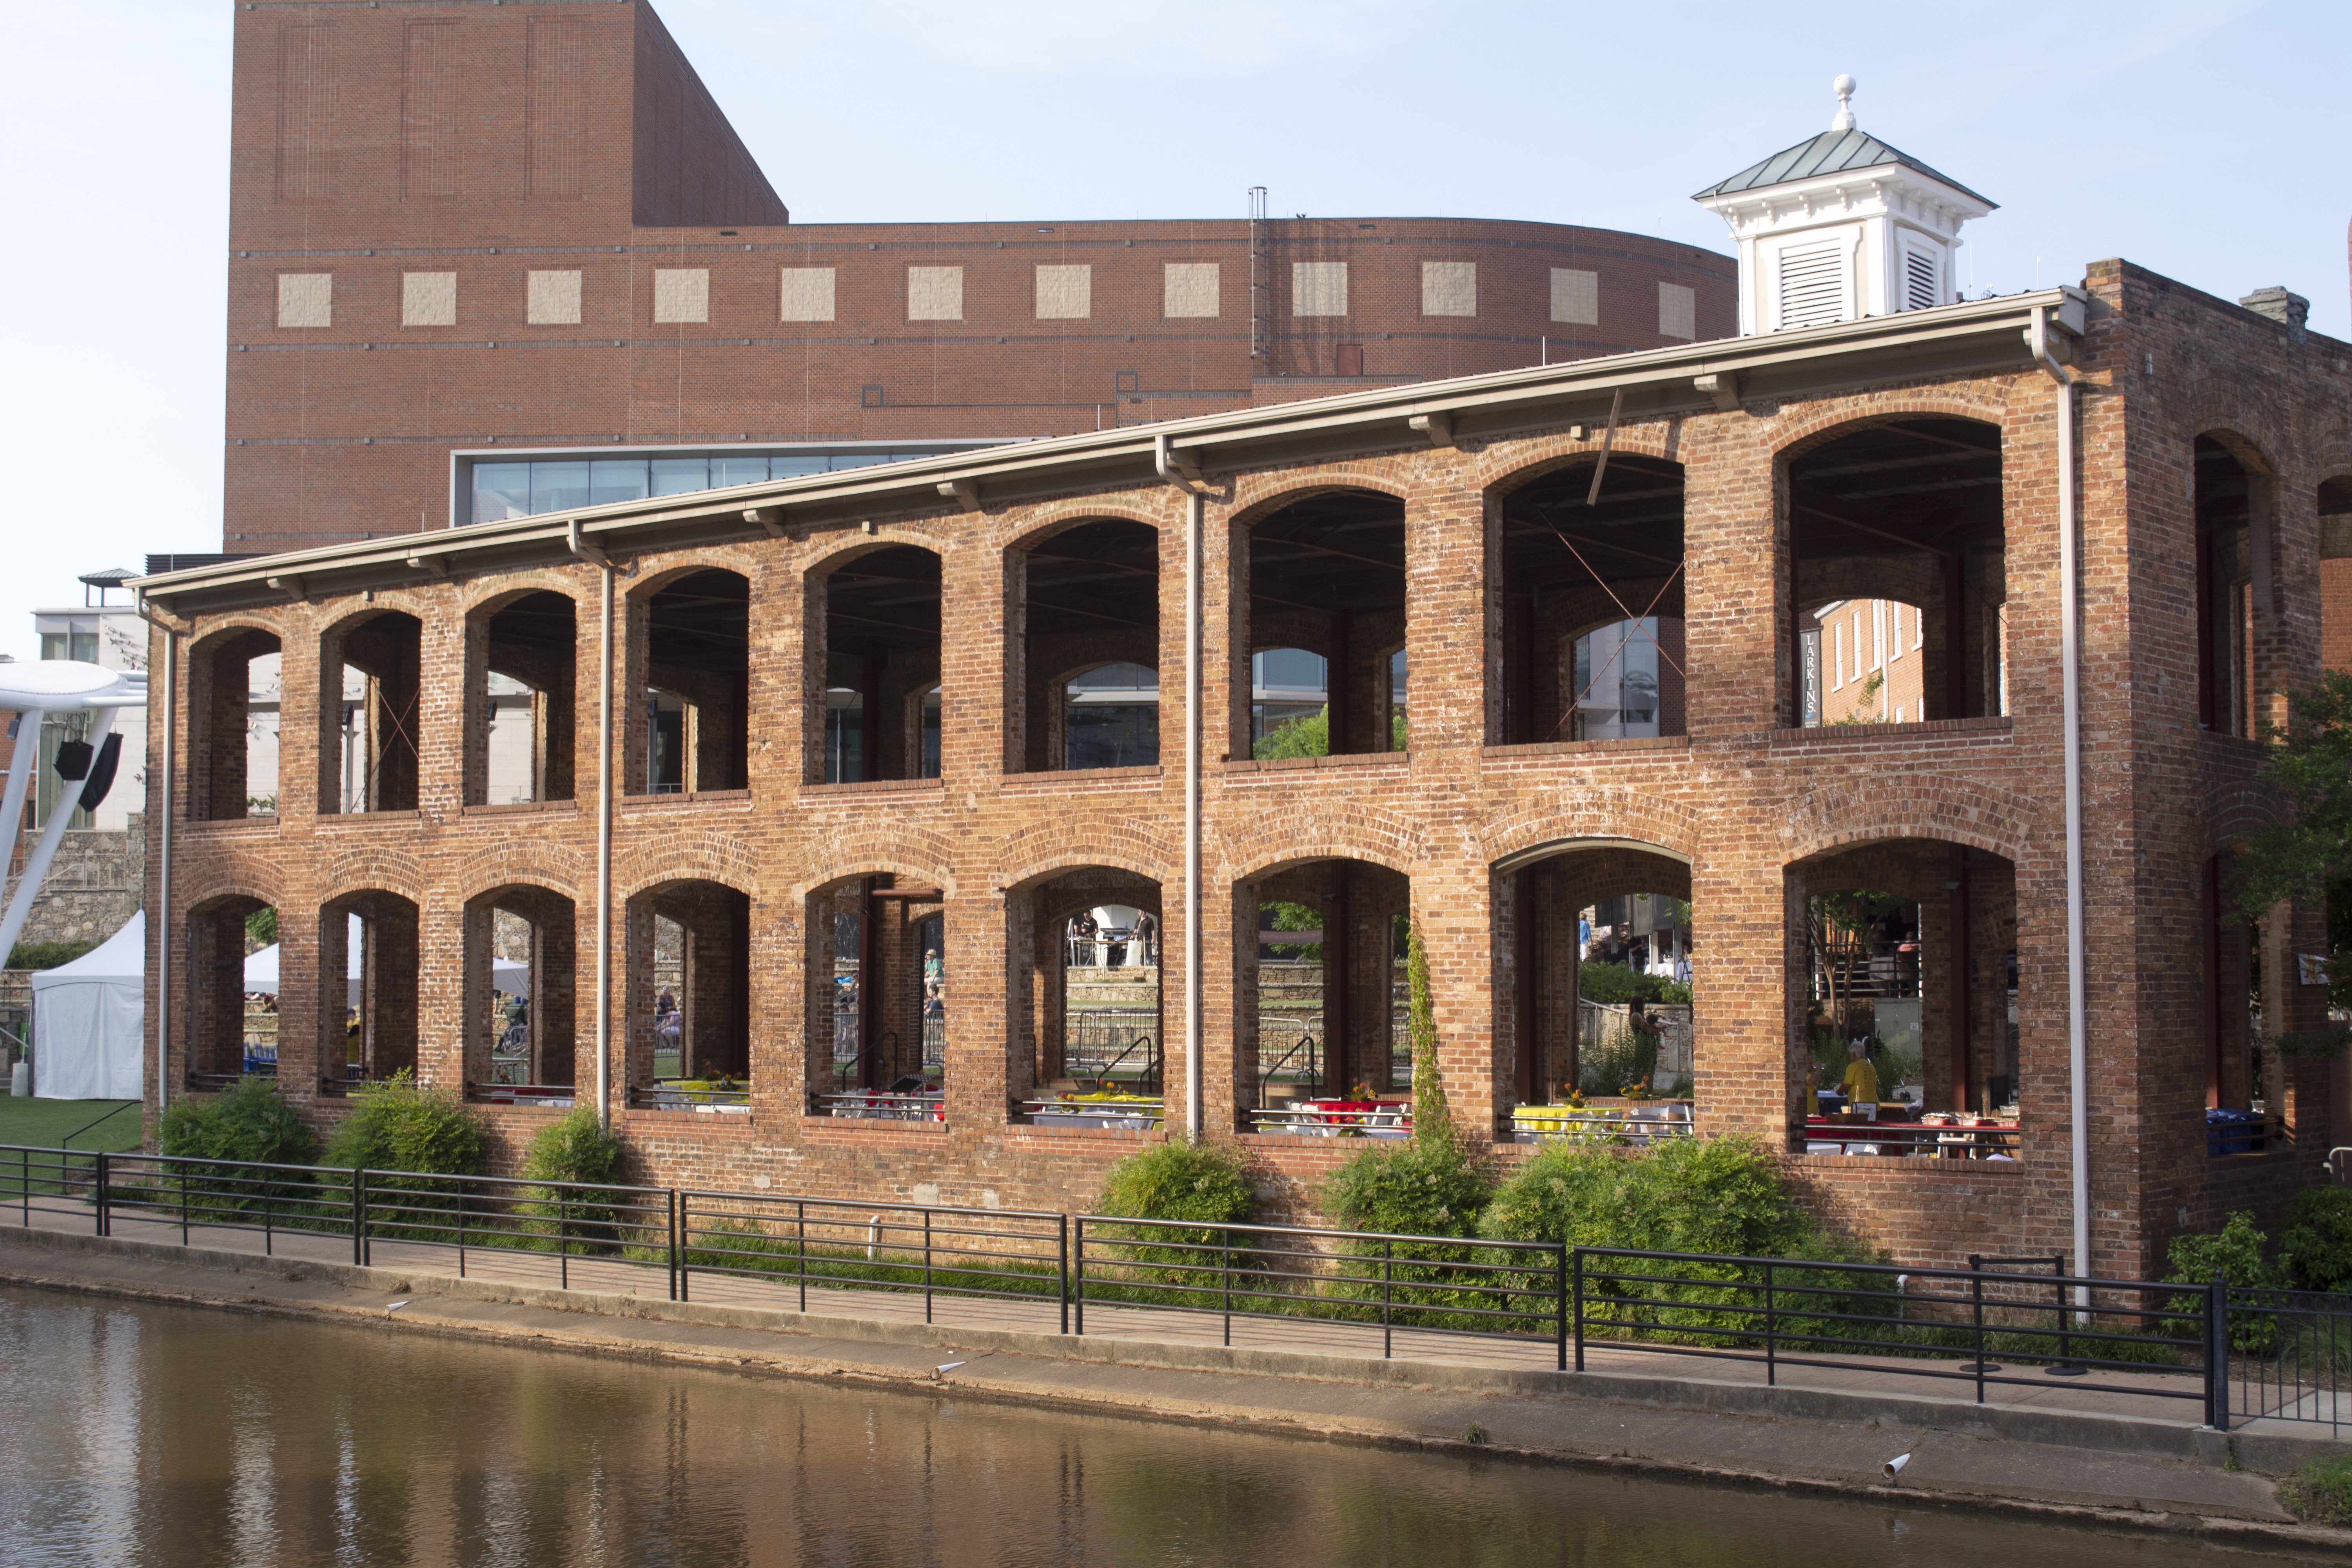 Old Building in downtown Greenville, SC